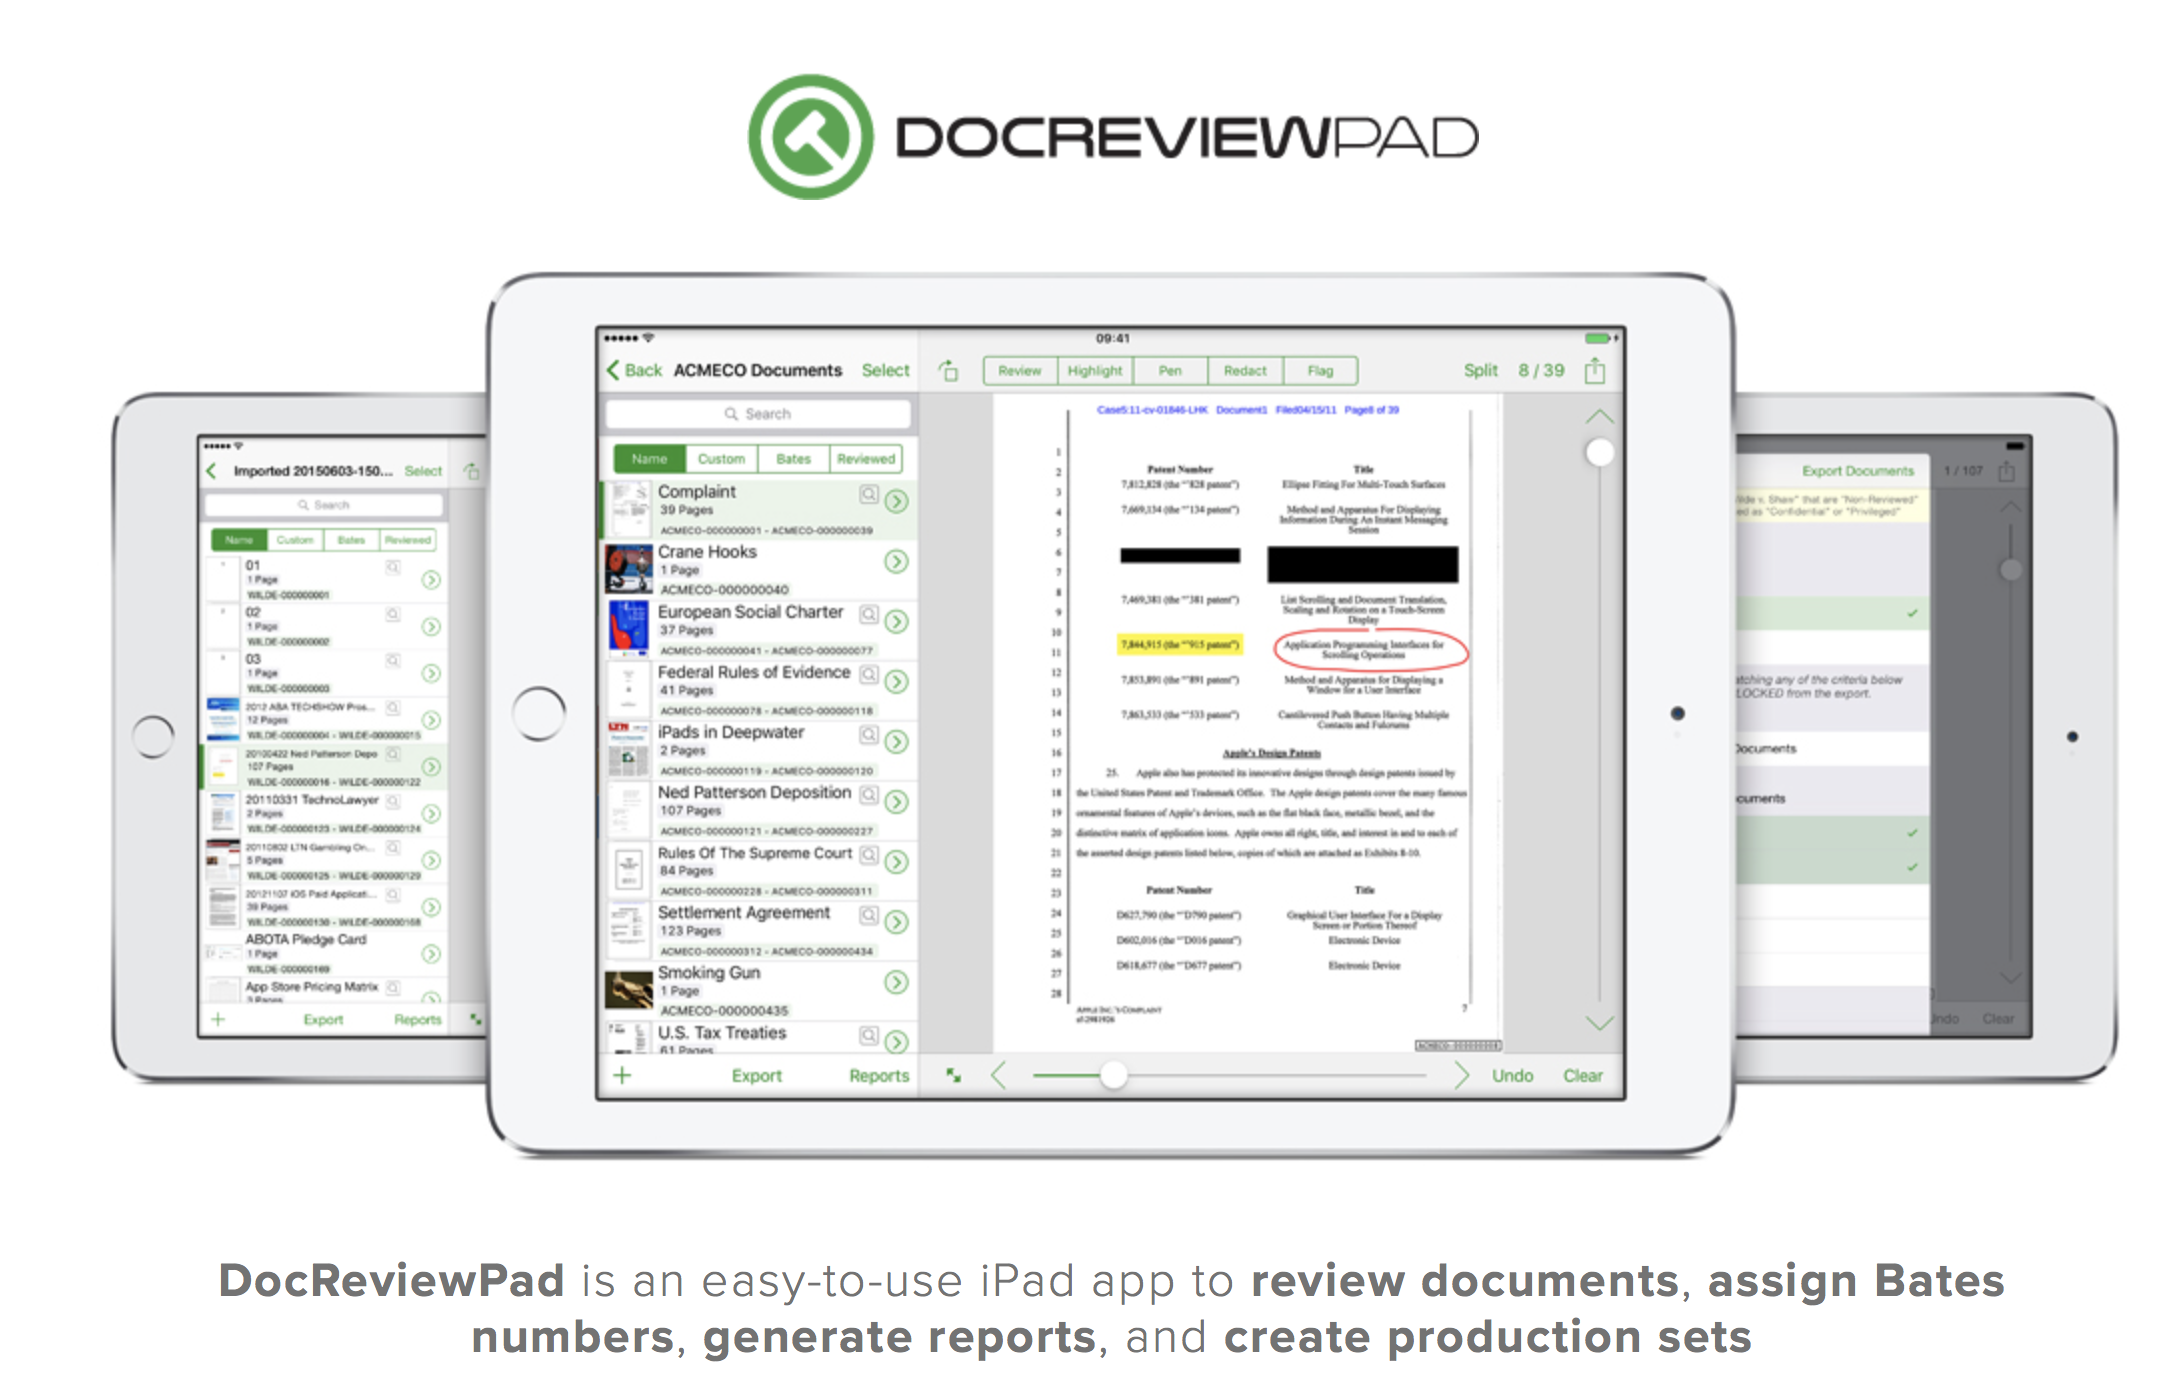 DocReviewPad - This is a companion product to TrialPad for iPad, written by LitSoftware.